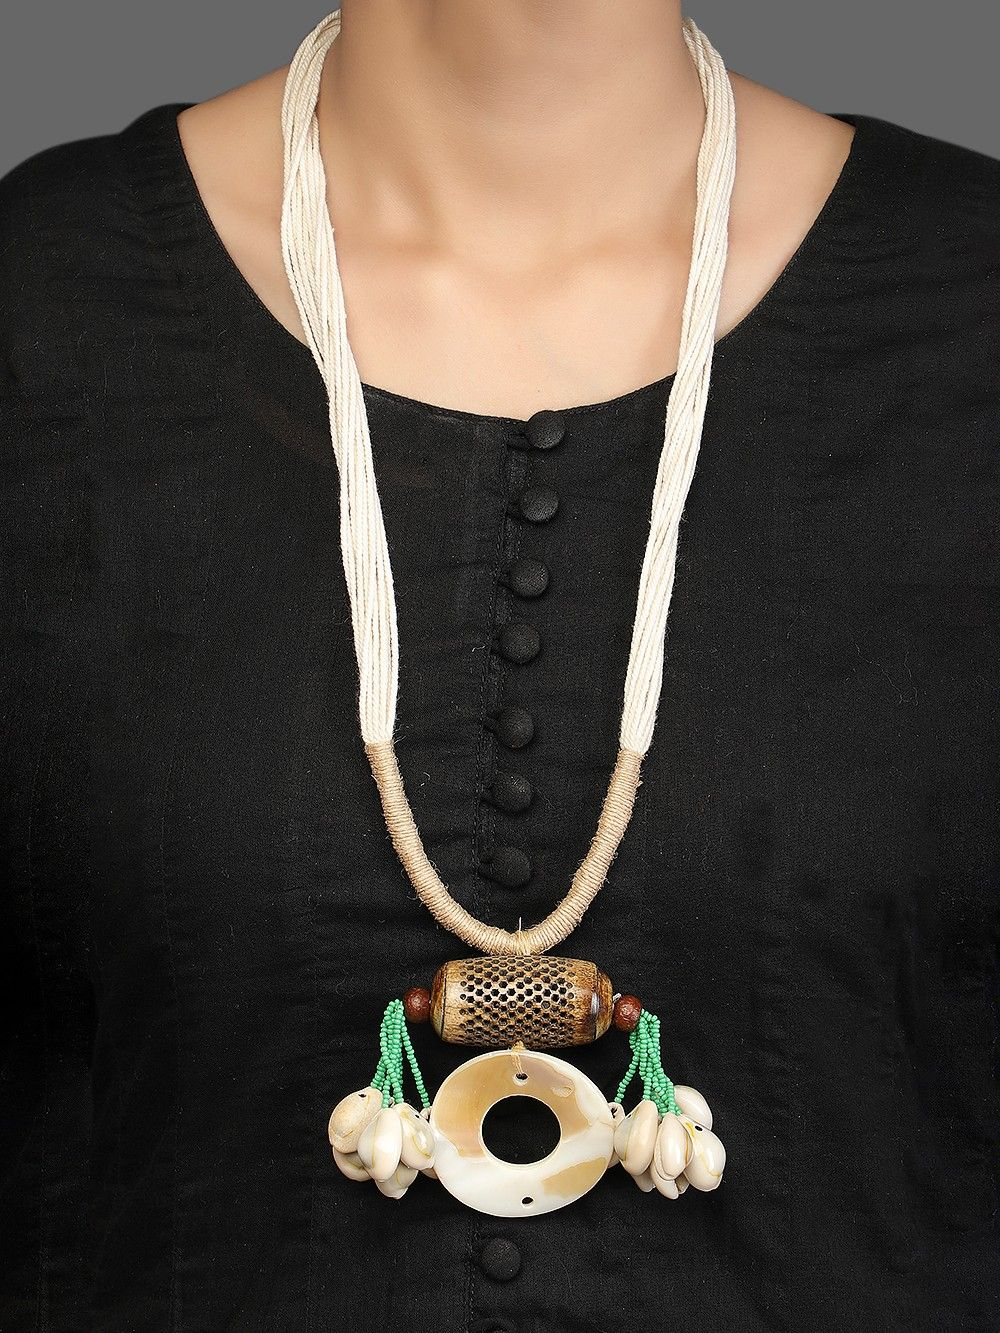 Buy White Handcrafted Fabric Necklace Gdj 1205661 Gdj2 The Loom